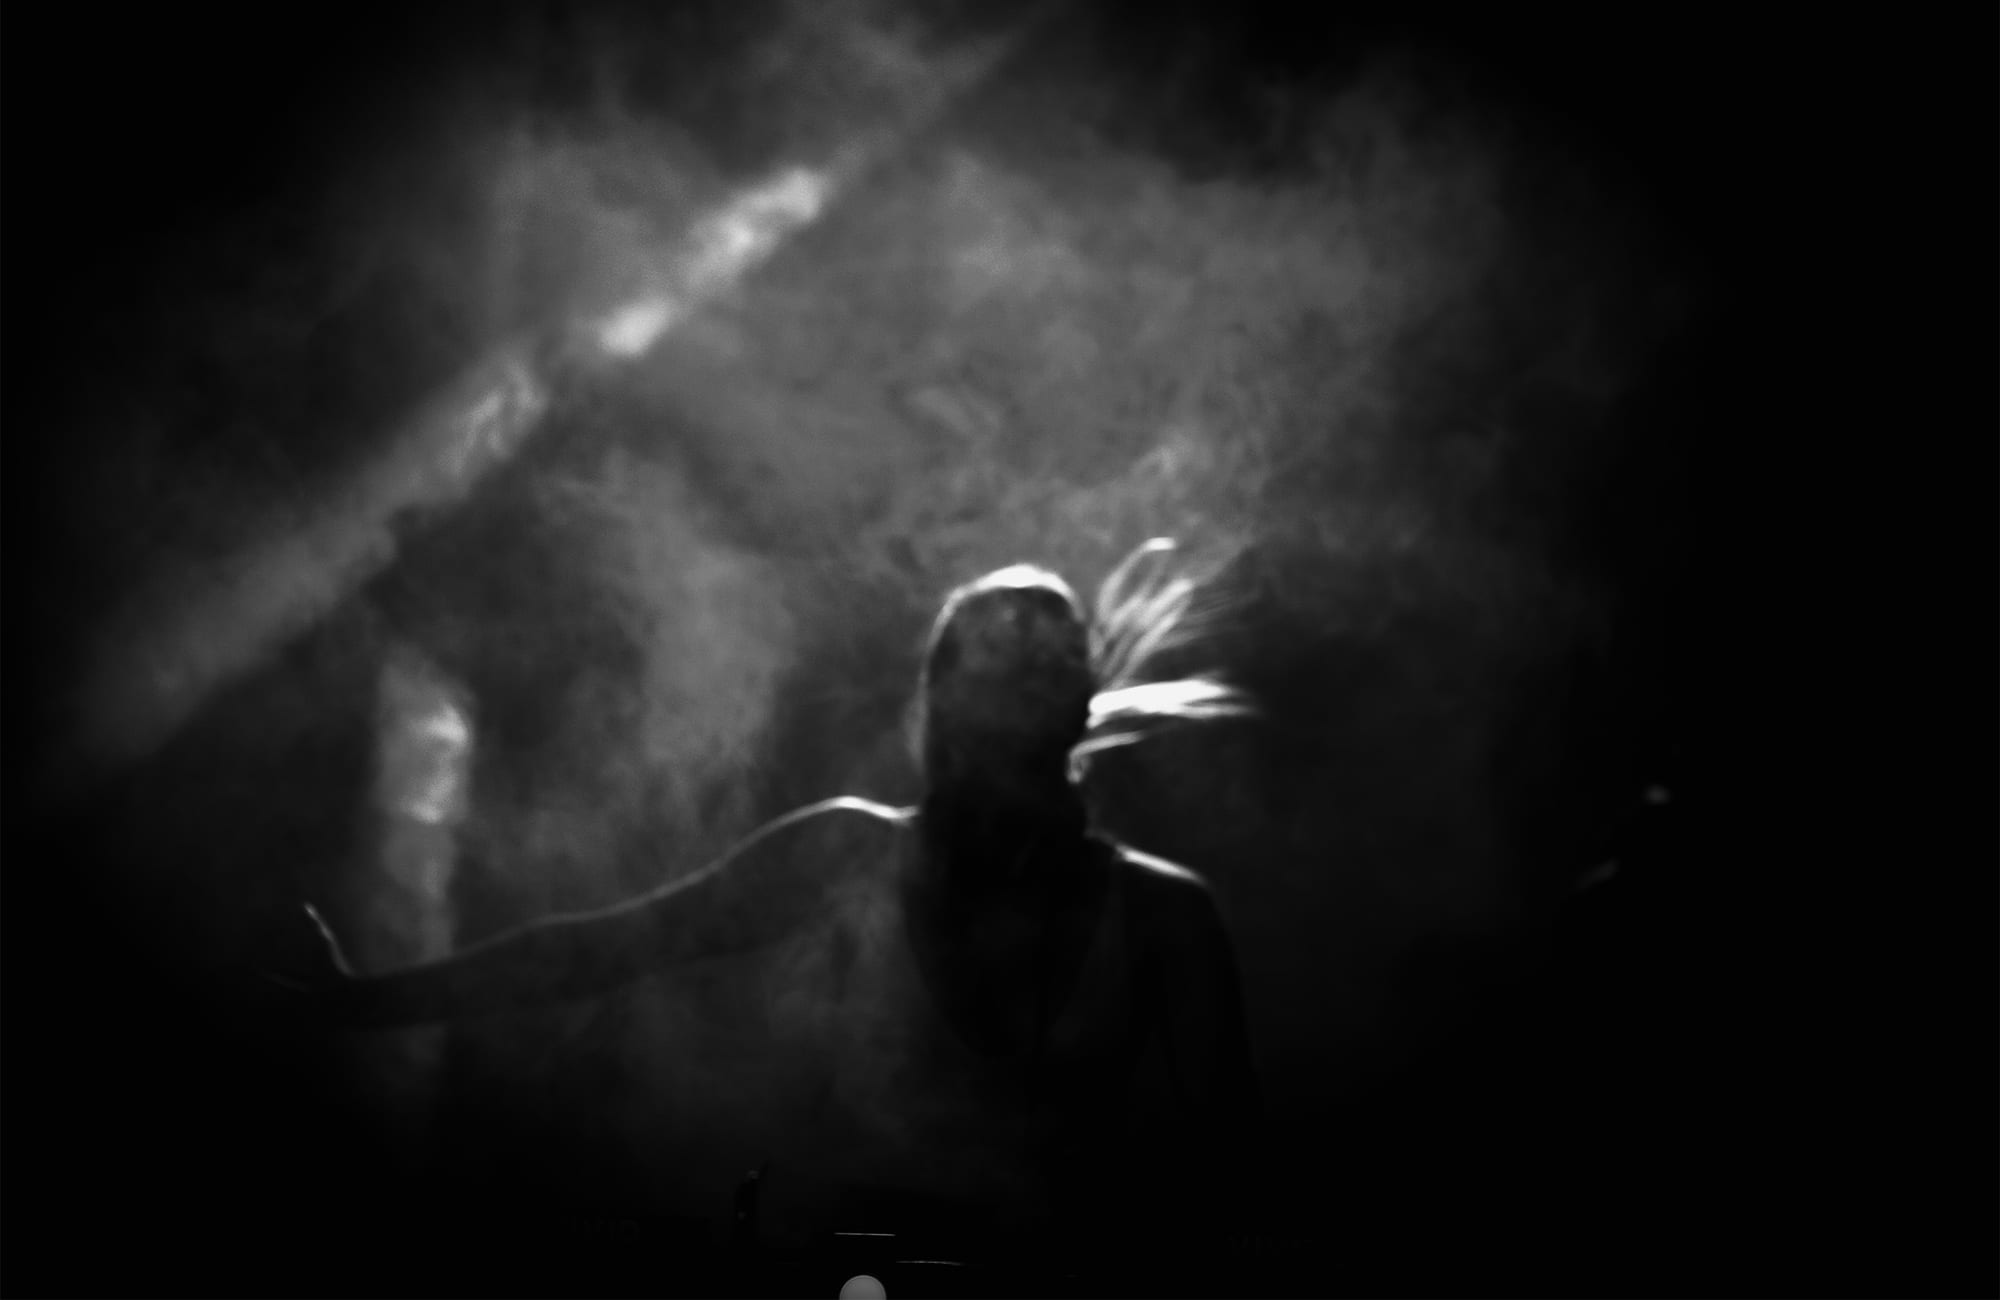 a woman in near darkness with her hair blowing around